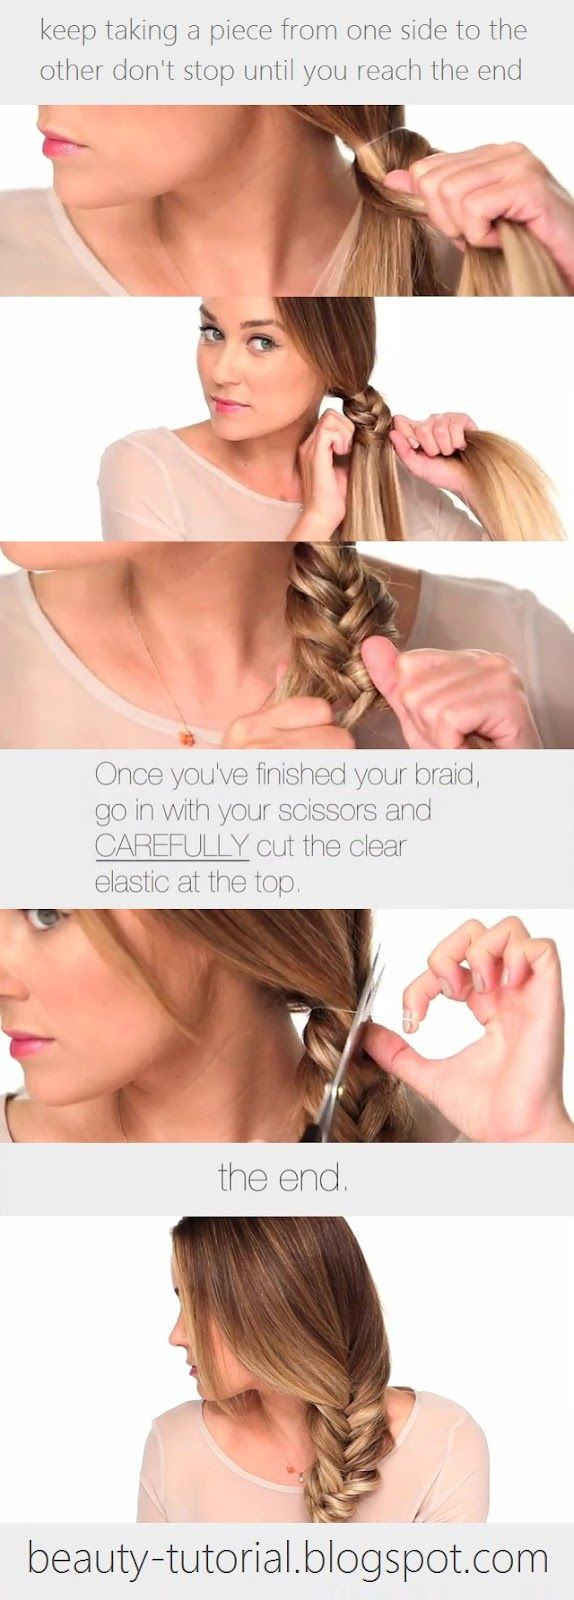 Lauren Conrad, you're so wise...: Braids Tutorials, Hair Tutorials, Makeup, Floating Braids, Hair Style, Fishtail Braids, Summer Hairstyles, Side Braids, Lauren Conrad